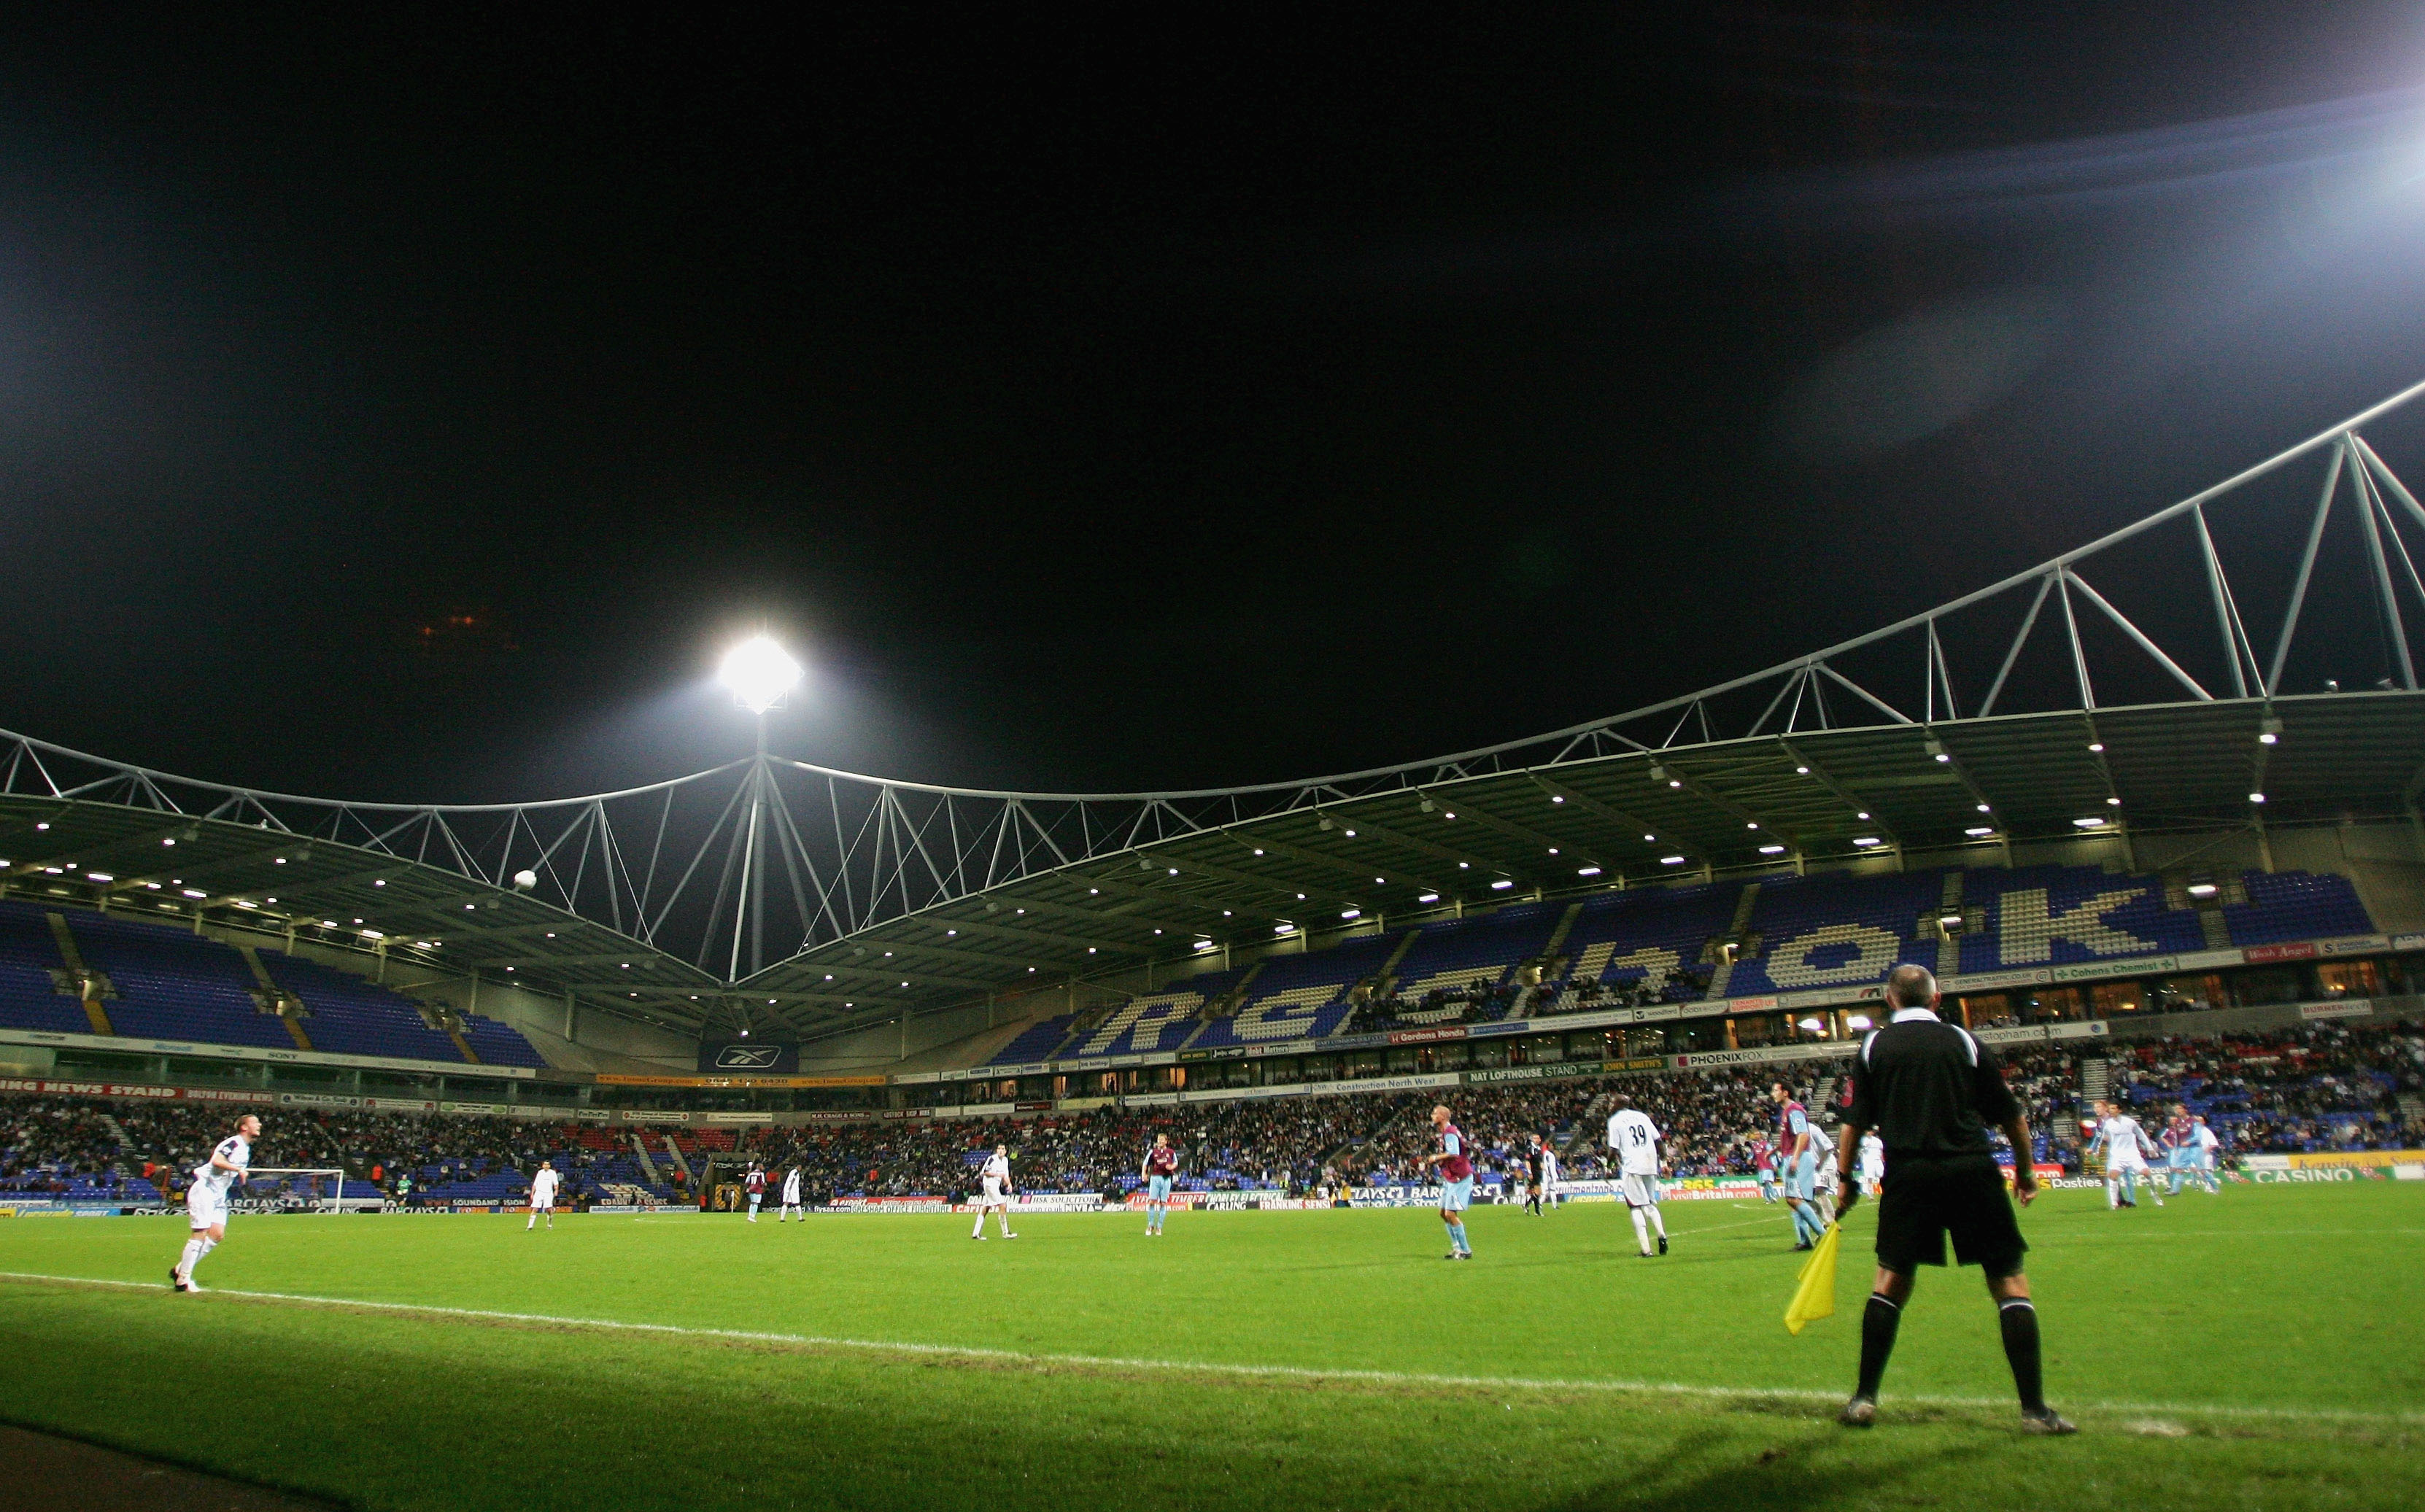 4,000 fan sell out for Bolton, just a few coach seats available for £5